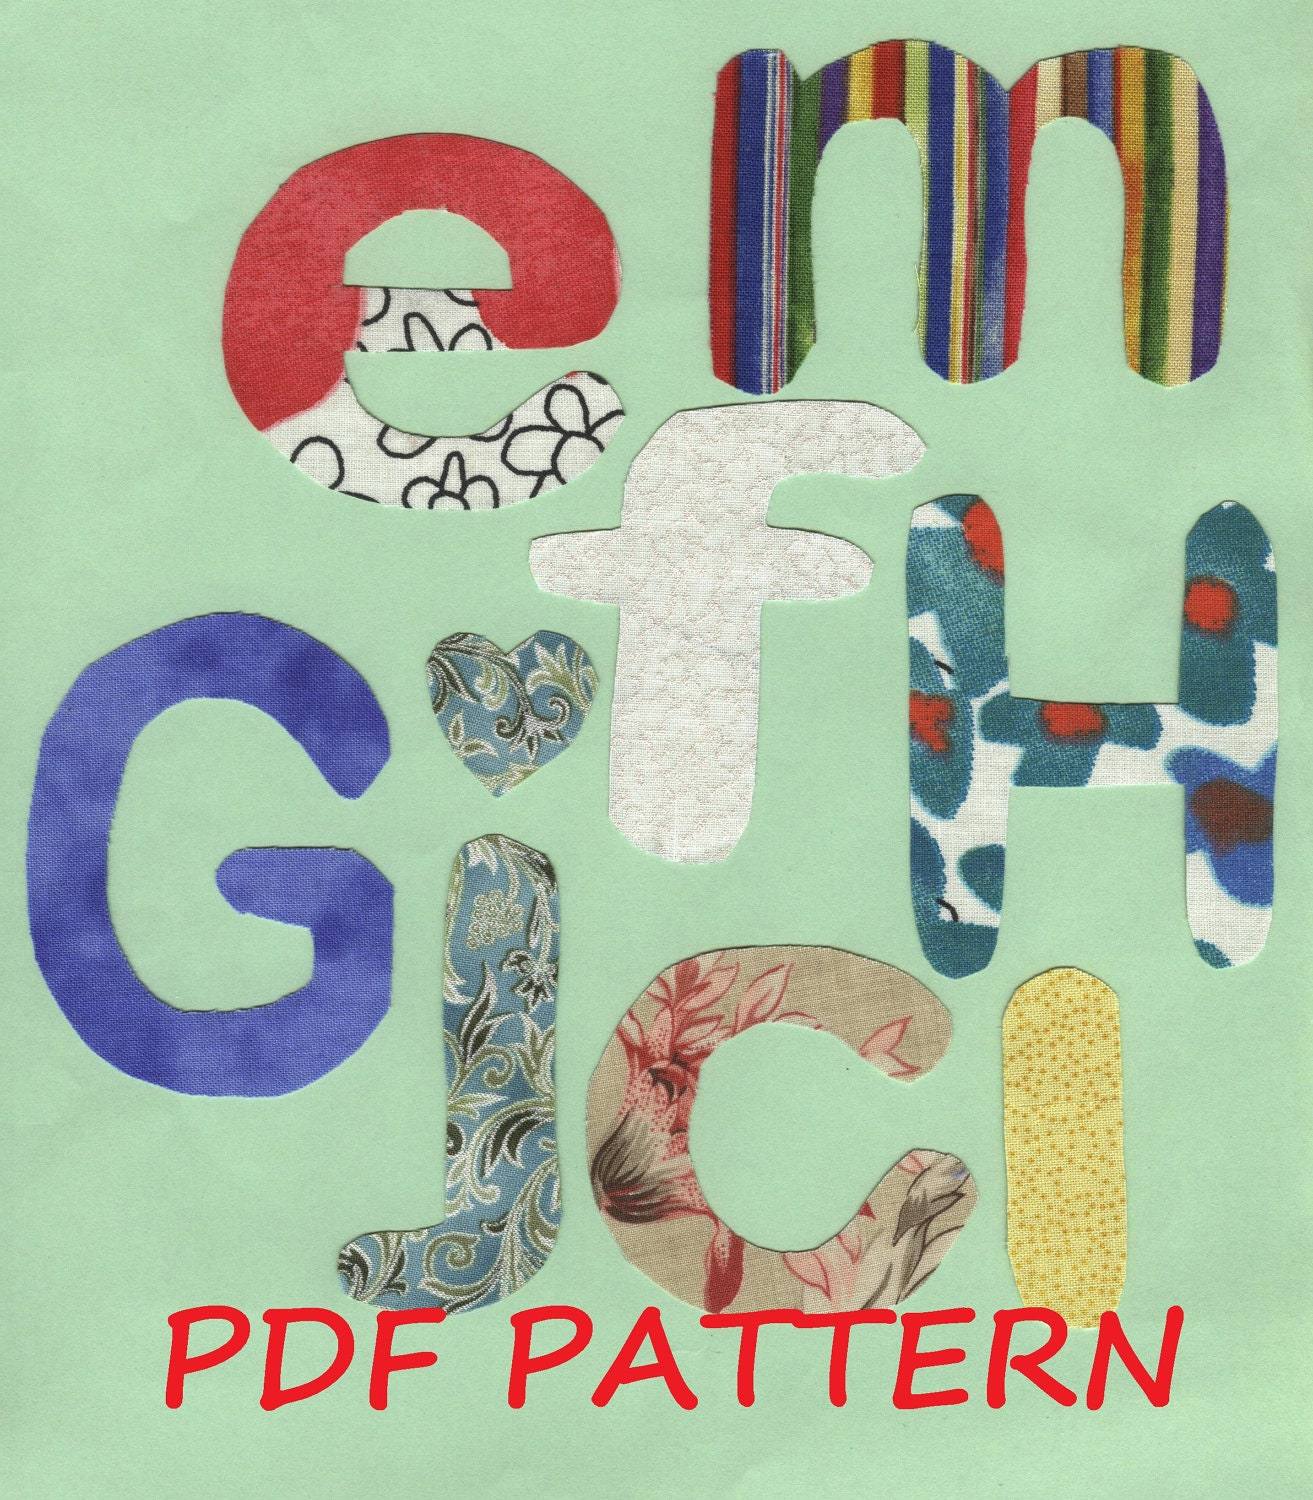 alphabet letters pattern 15 fabric applique pdf alphabet letters pattern 2 3 fabric applique pdf by 247